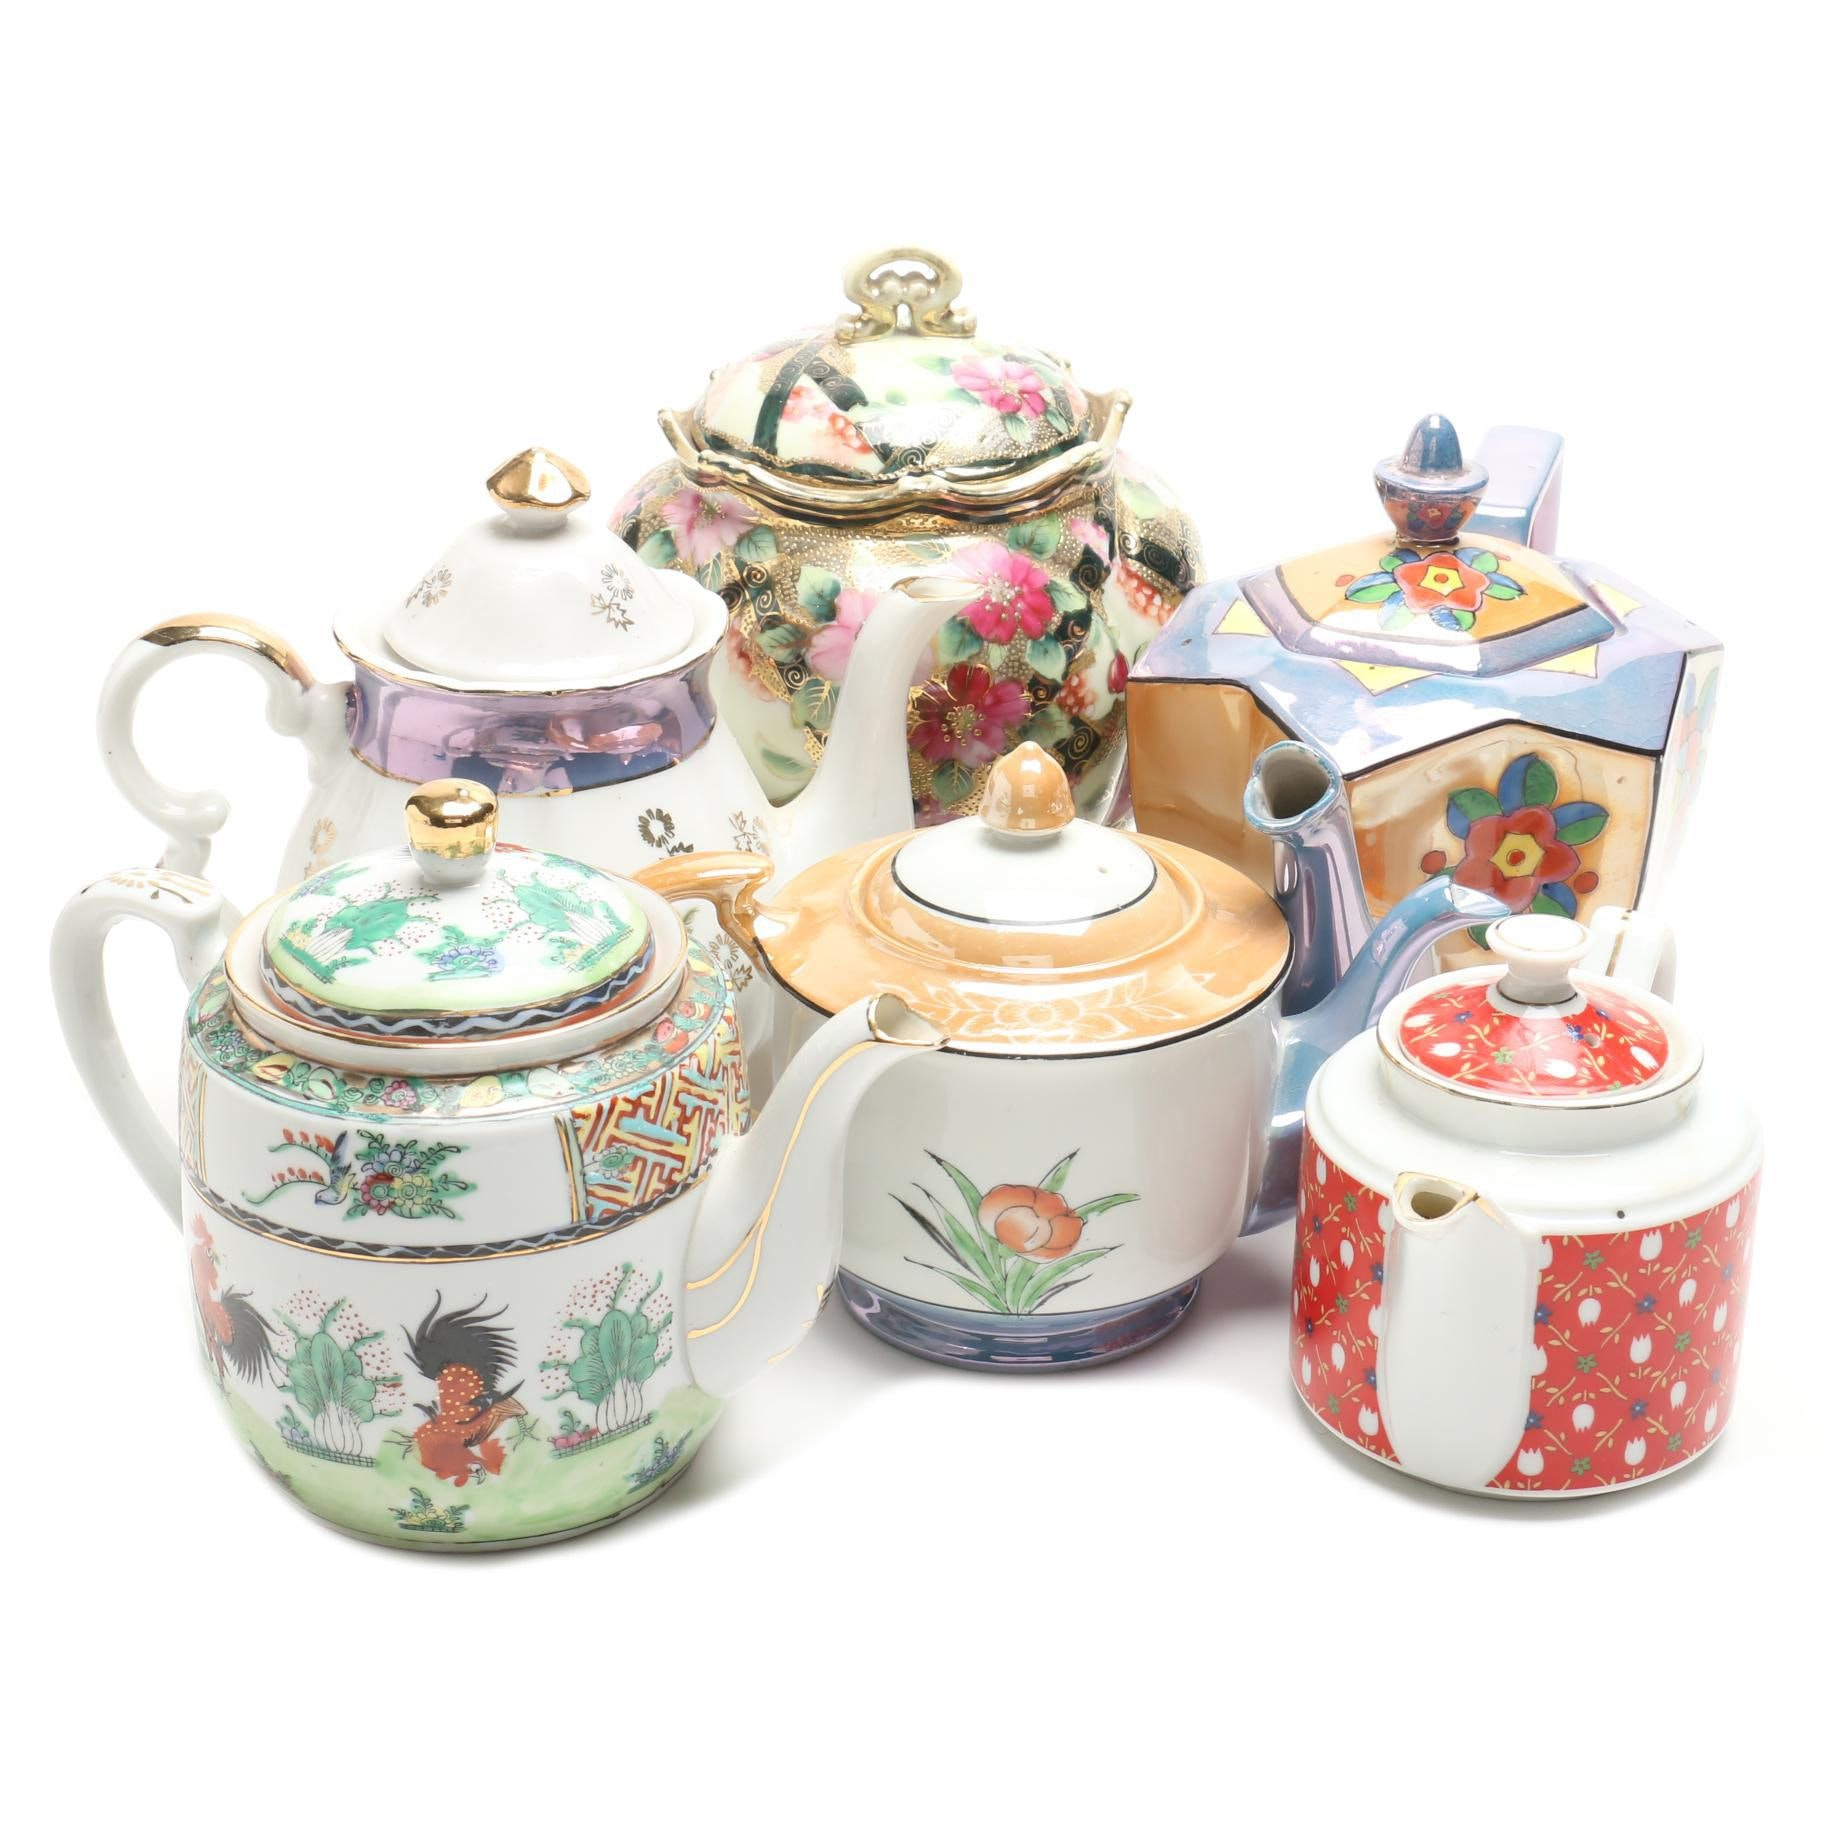 Japanese Porcelain Handpainted Teapots and Serveware Including Nippon and More